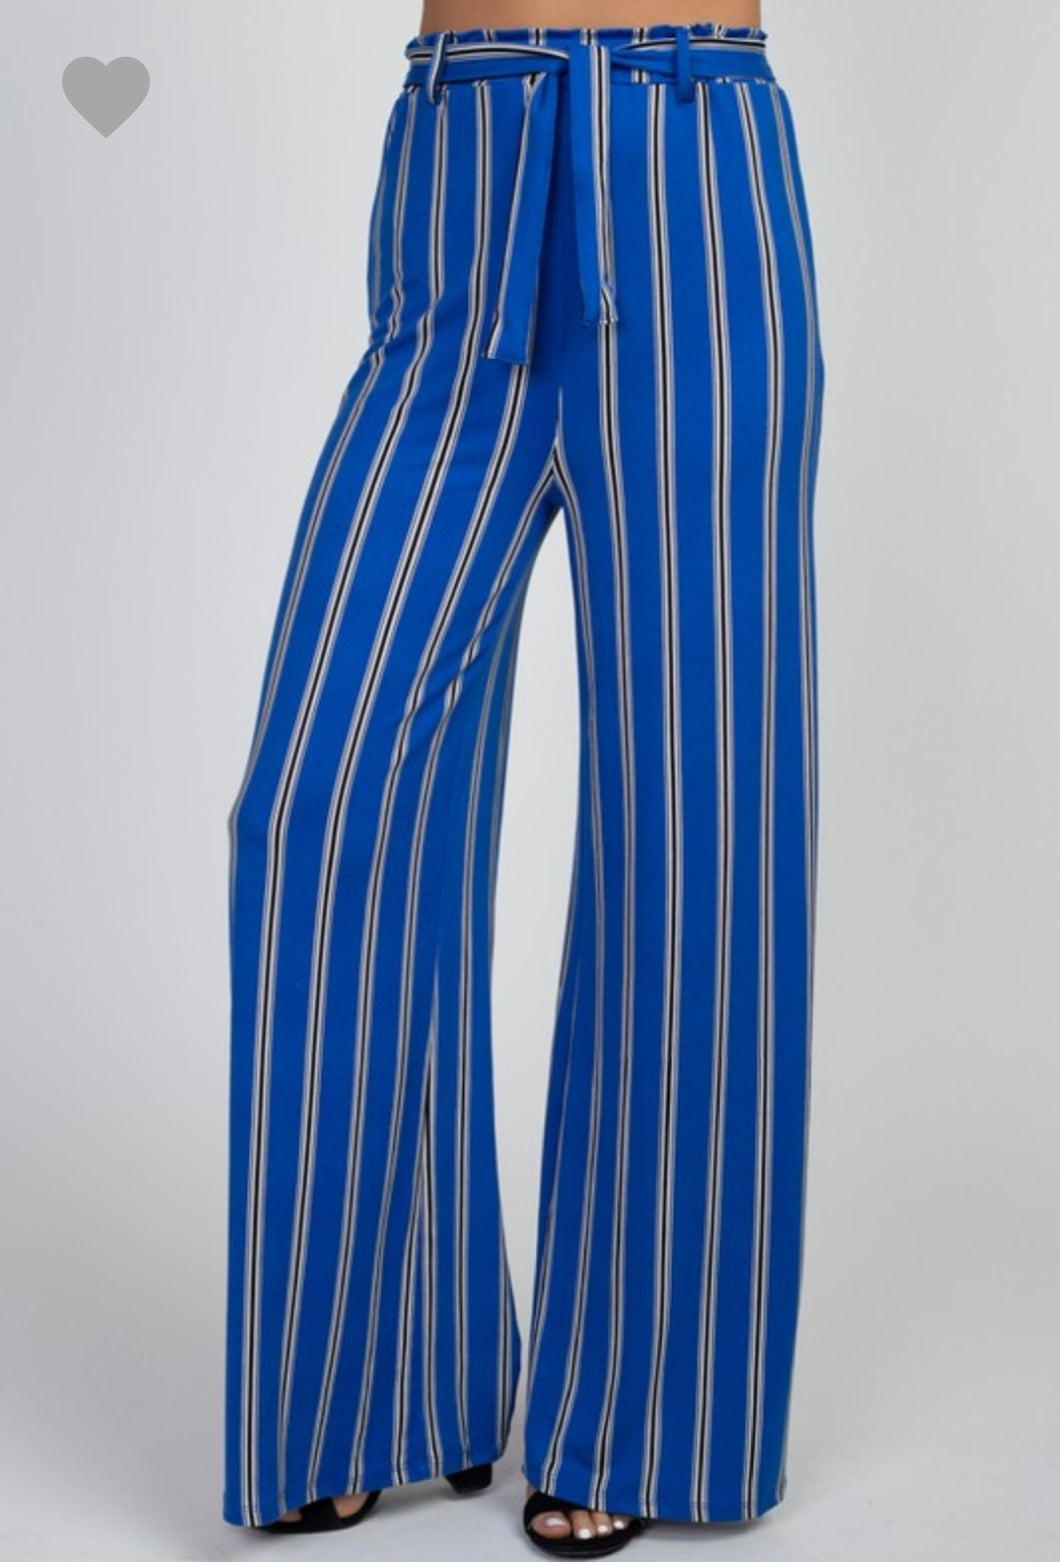 Cobalt Blue Striped Pant - Wanderer Traveling Boutique